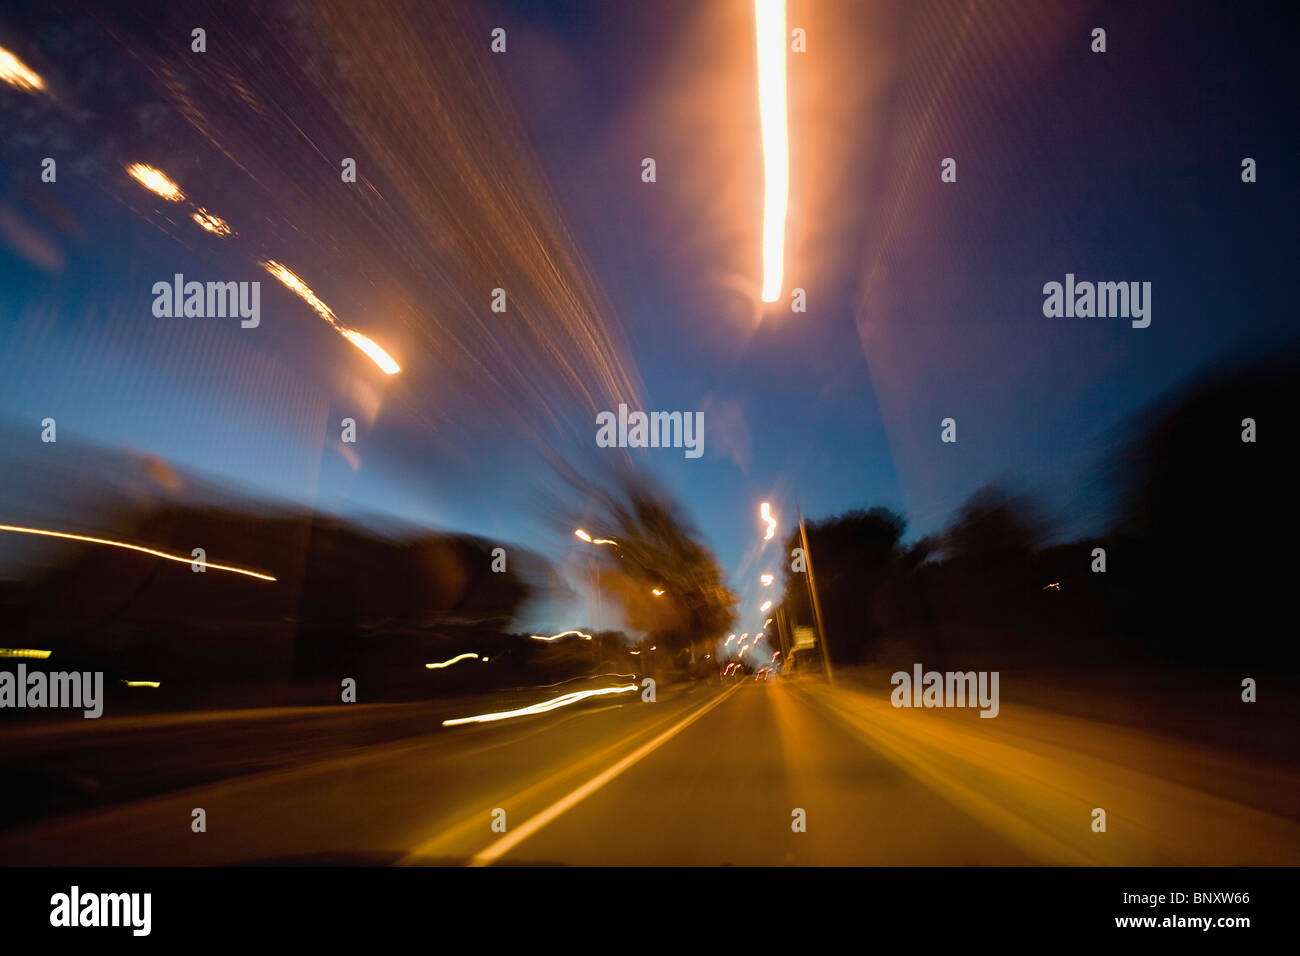 Light trails of traffic on busy street at night - Stock Image